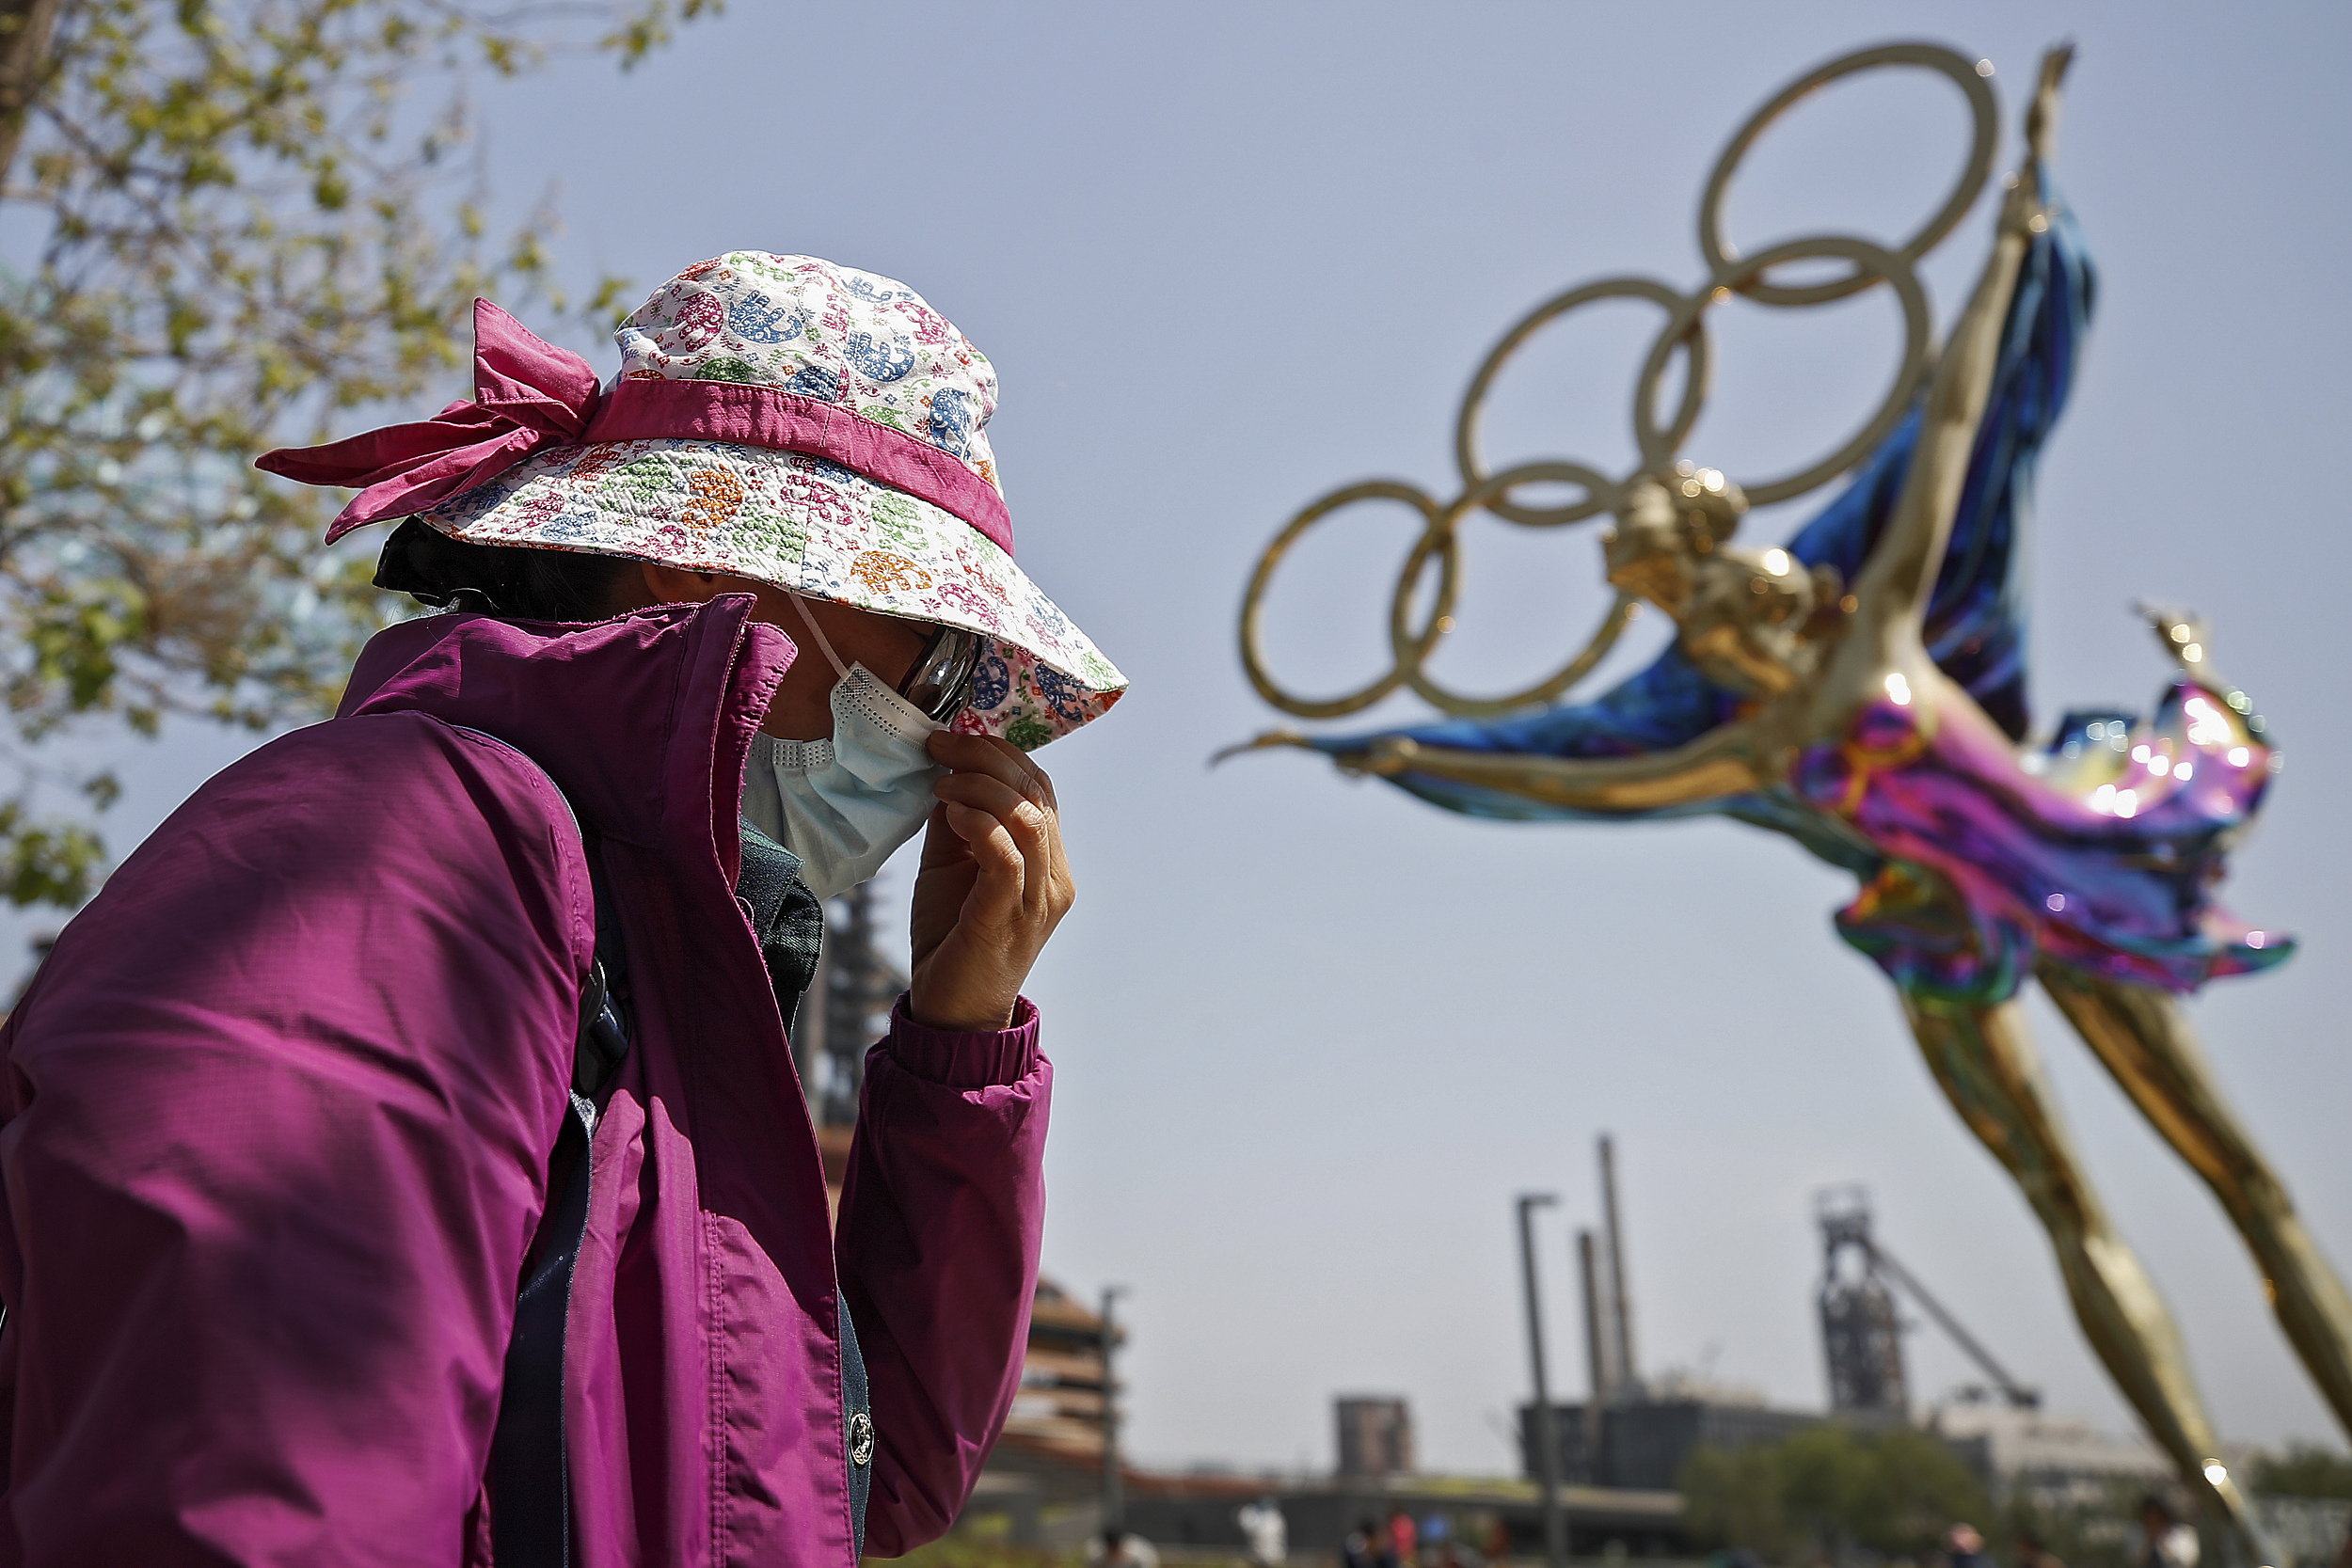 A woman adjusts her face mask as she walks by a statue featuring the Winter Olympics figure skating on display at the Shougang Park in Beijing, Sunday, May 2. Photo: VCG